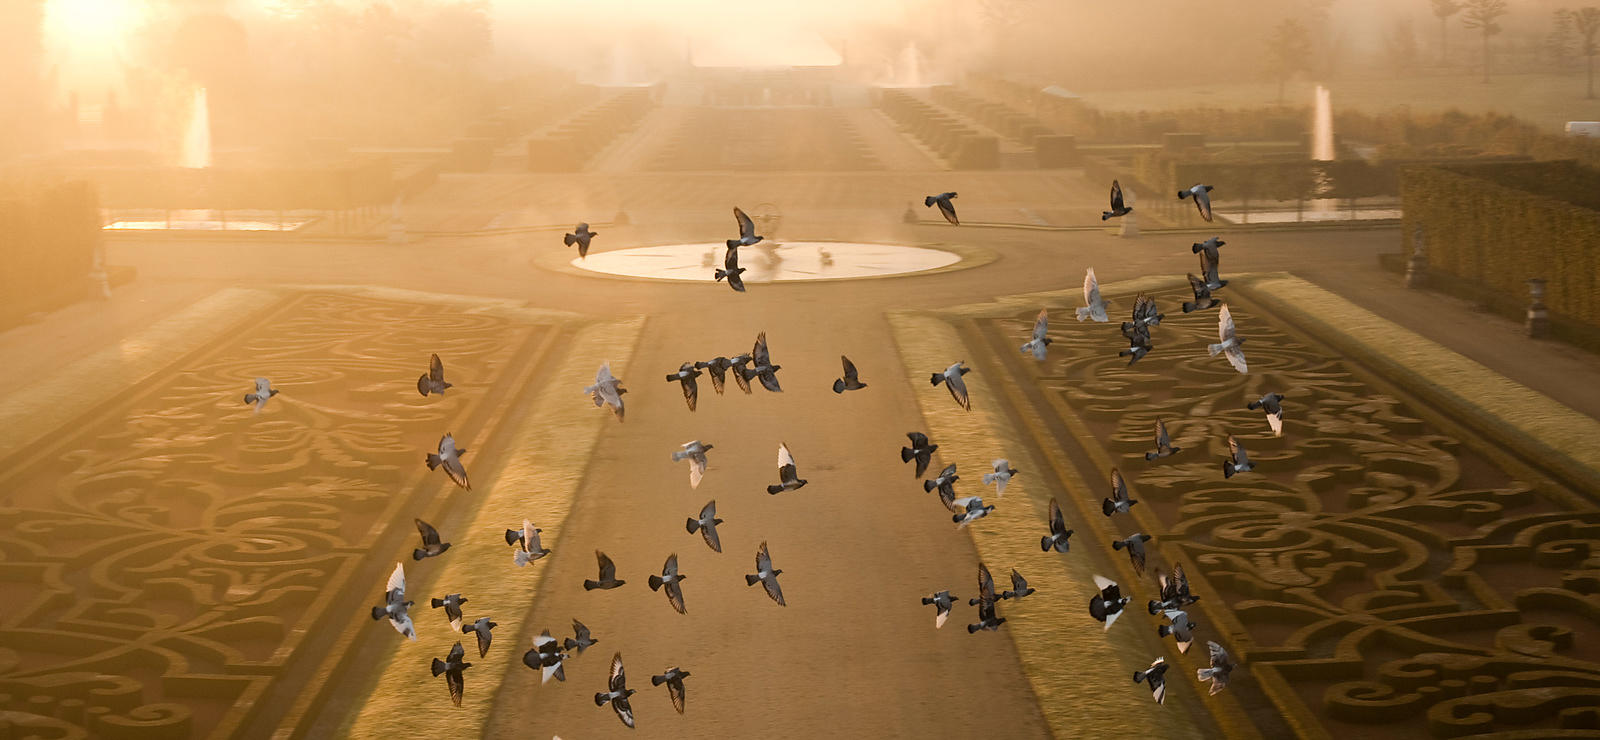 FLYING BIRDS AT SUNRISE IN CHAMP DE BATAILLE GARDEN